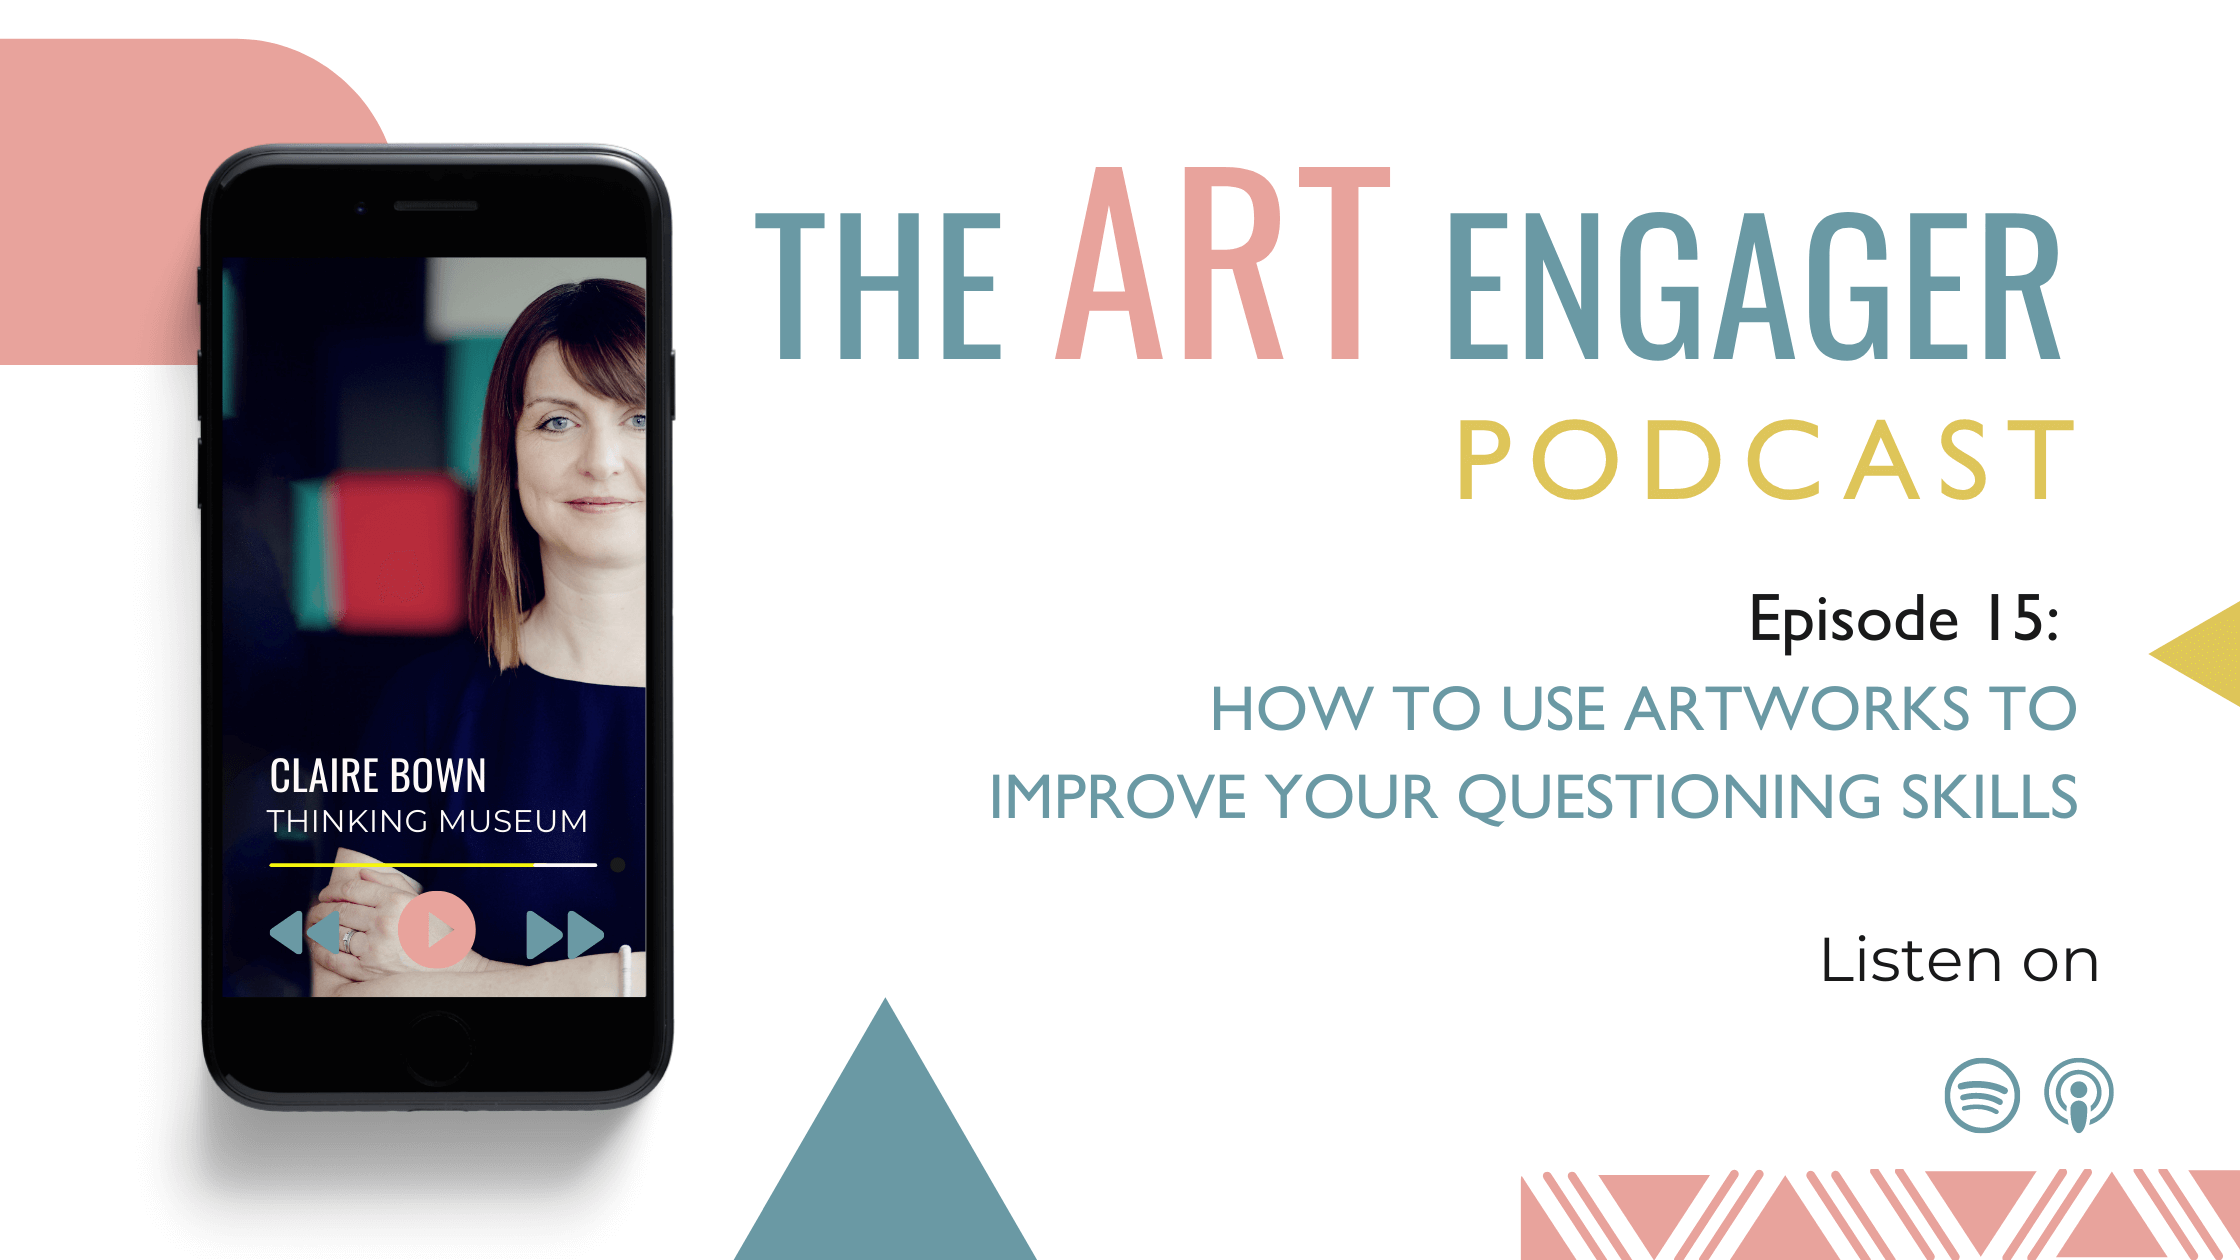 How to Use Artworks to Improve your Questioning Skills